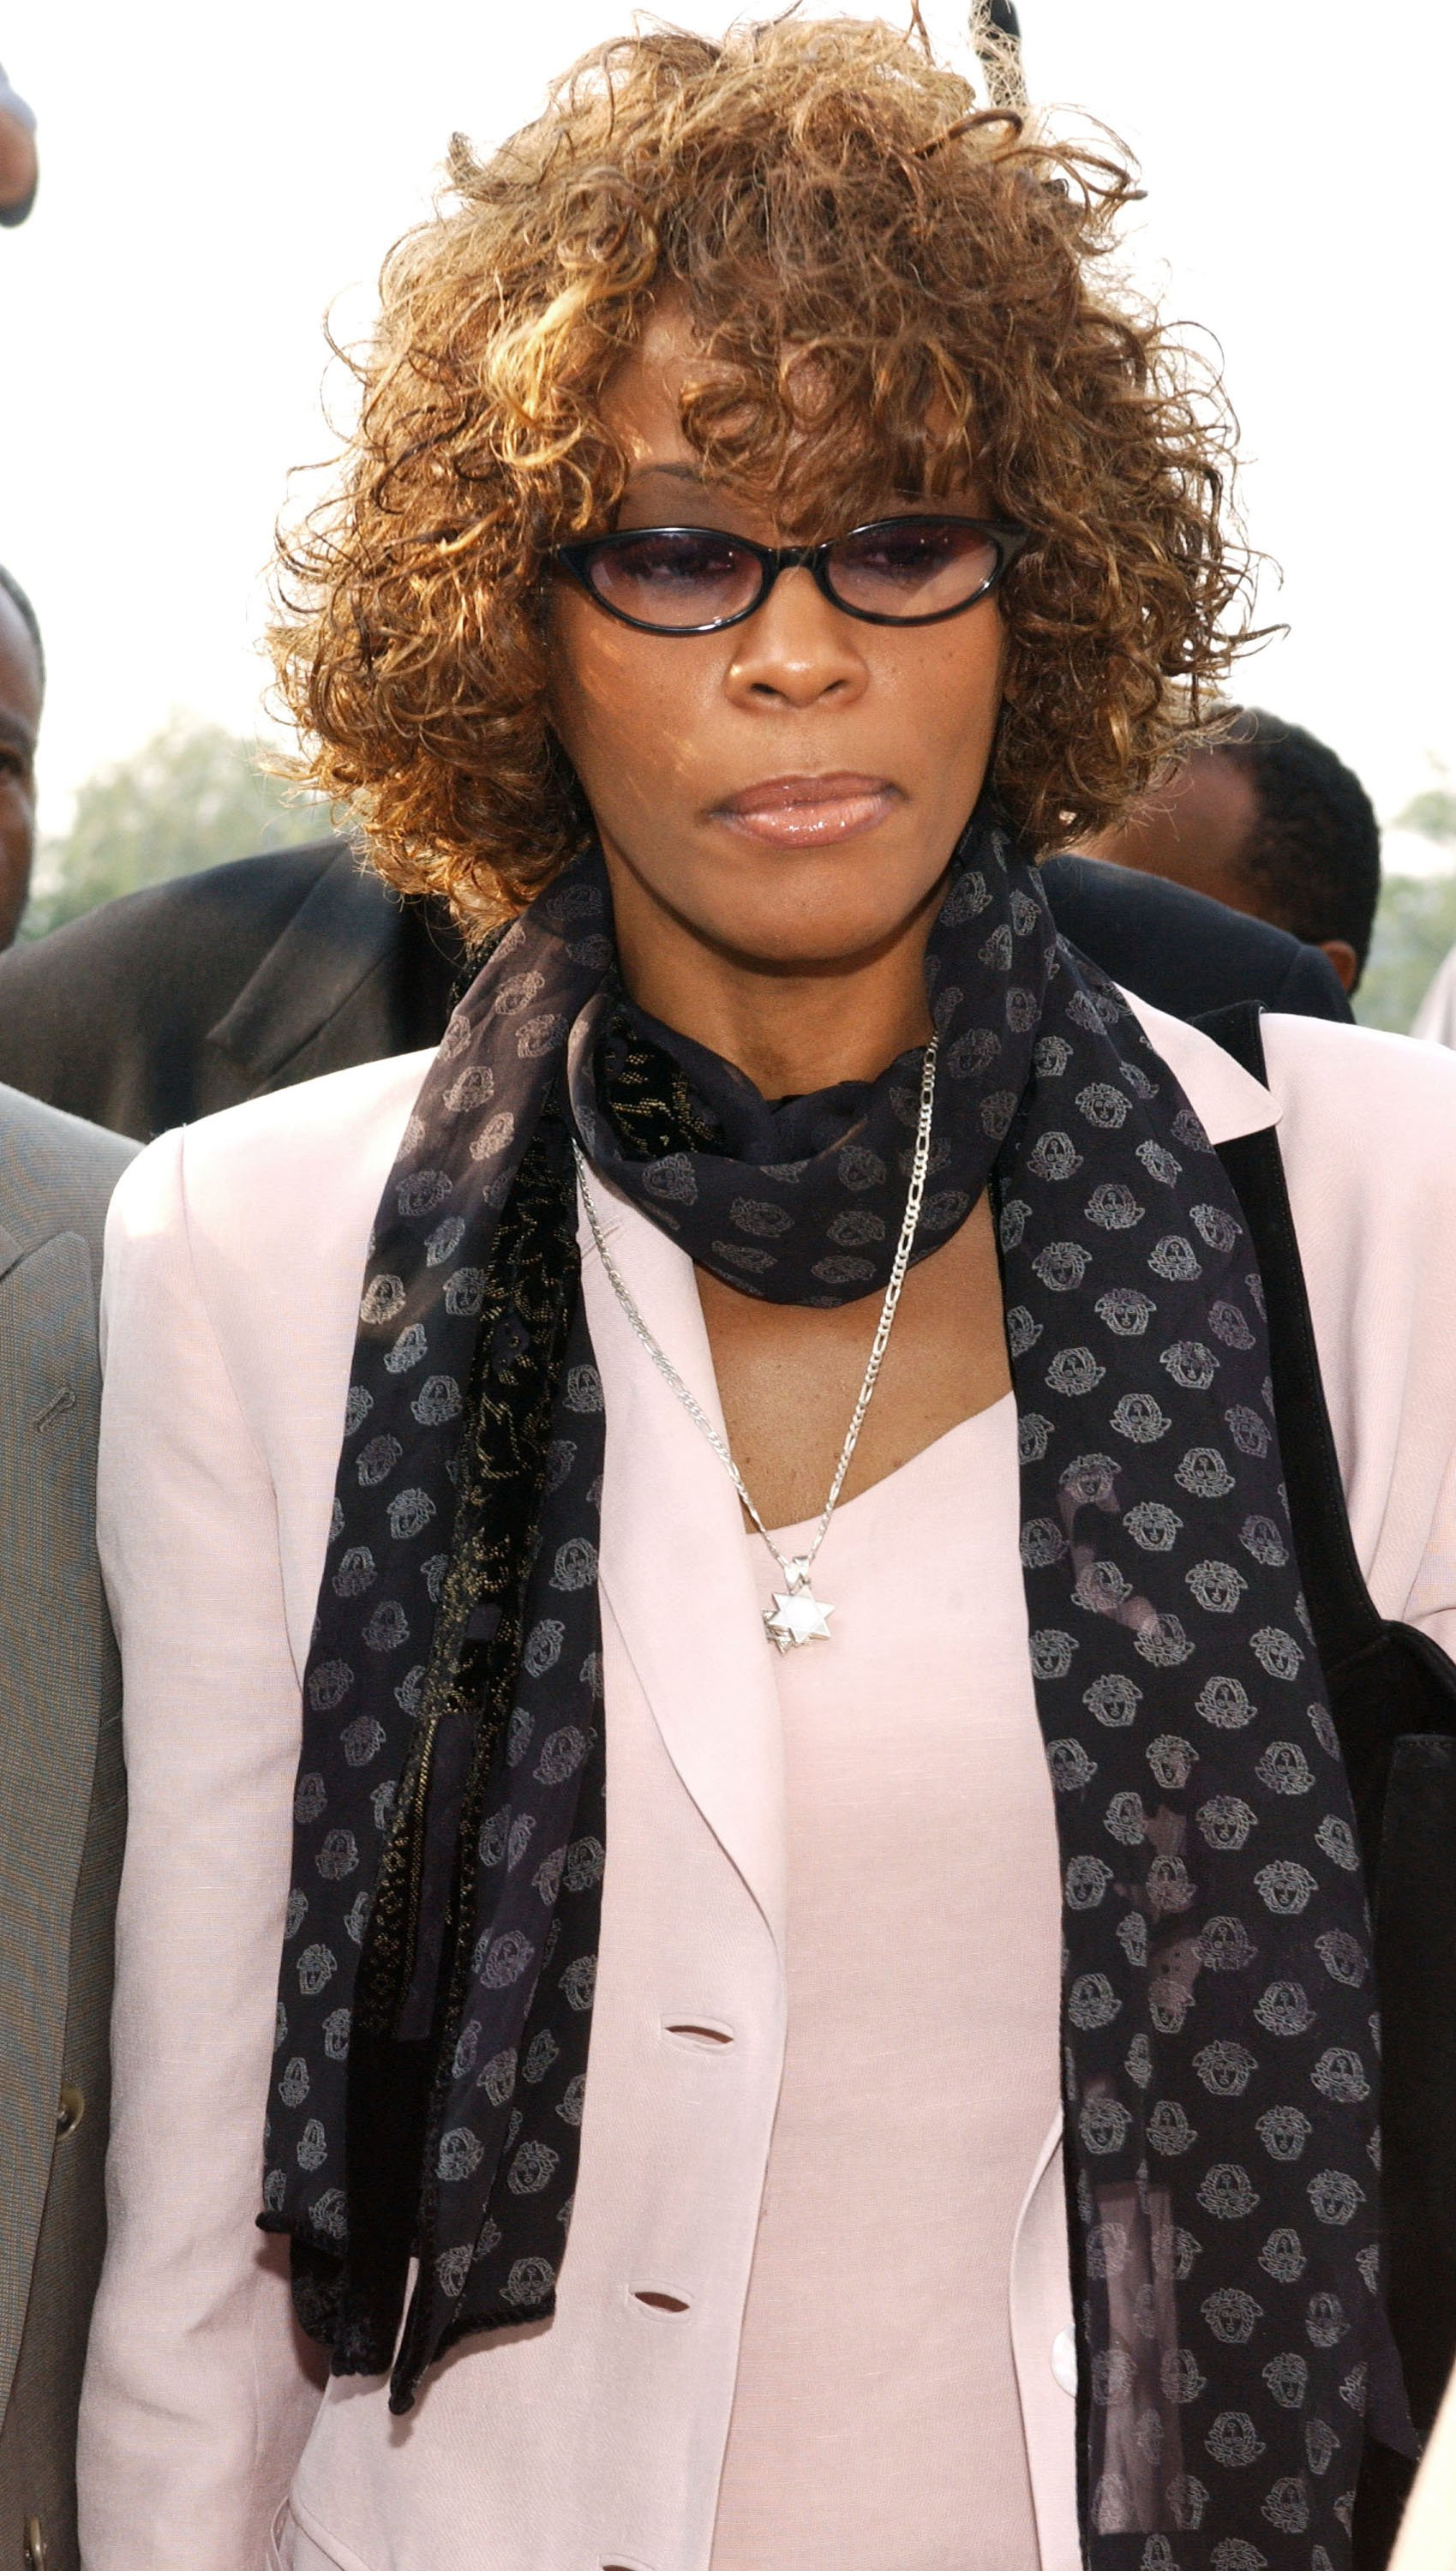 Whitney Houston leaving the courthouse after a probation violation hearing for her husband, Bobby Brown in August 2003. | Photo: Getty Images